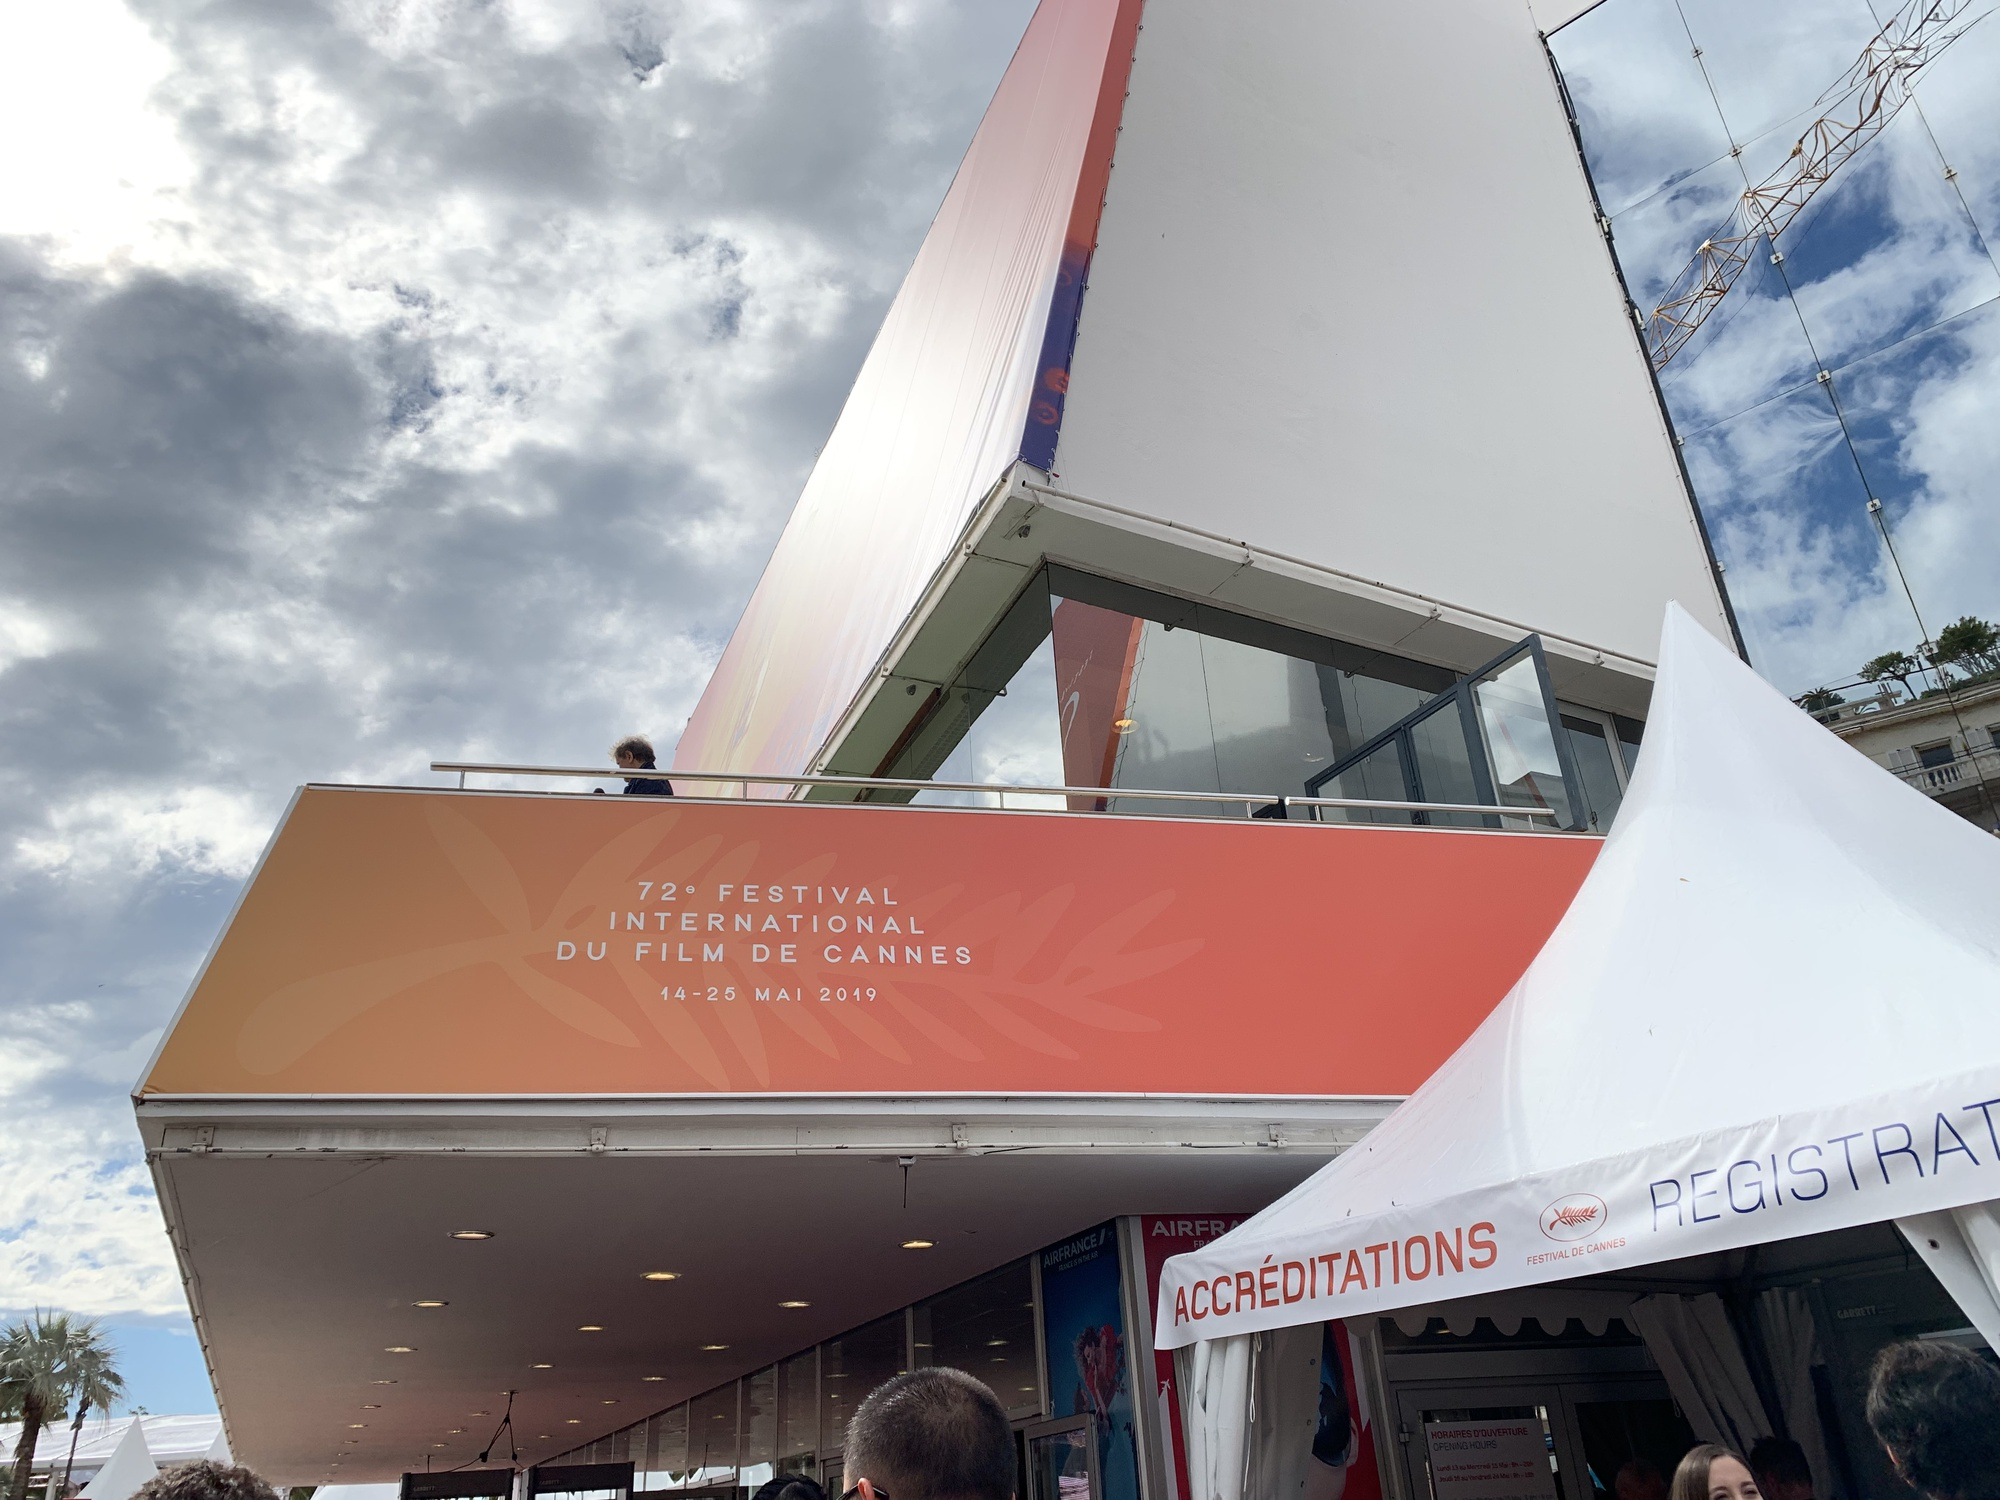 Outside Salle Debussy, one of the theaters where films are screened at Cannes.